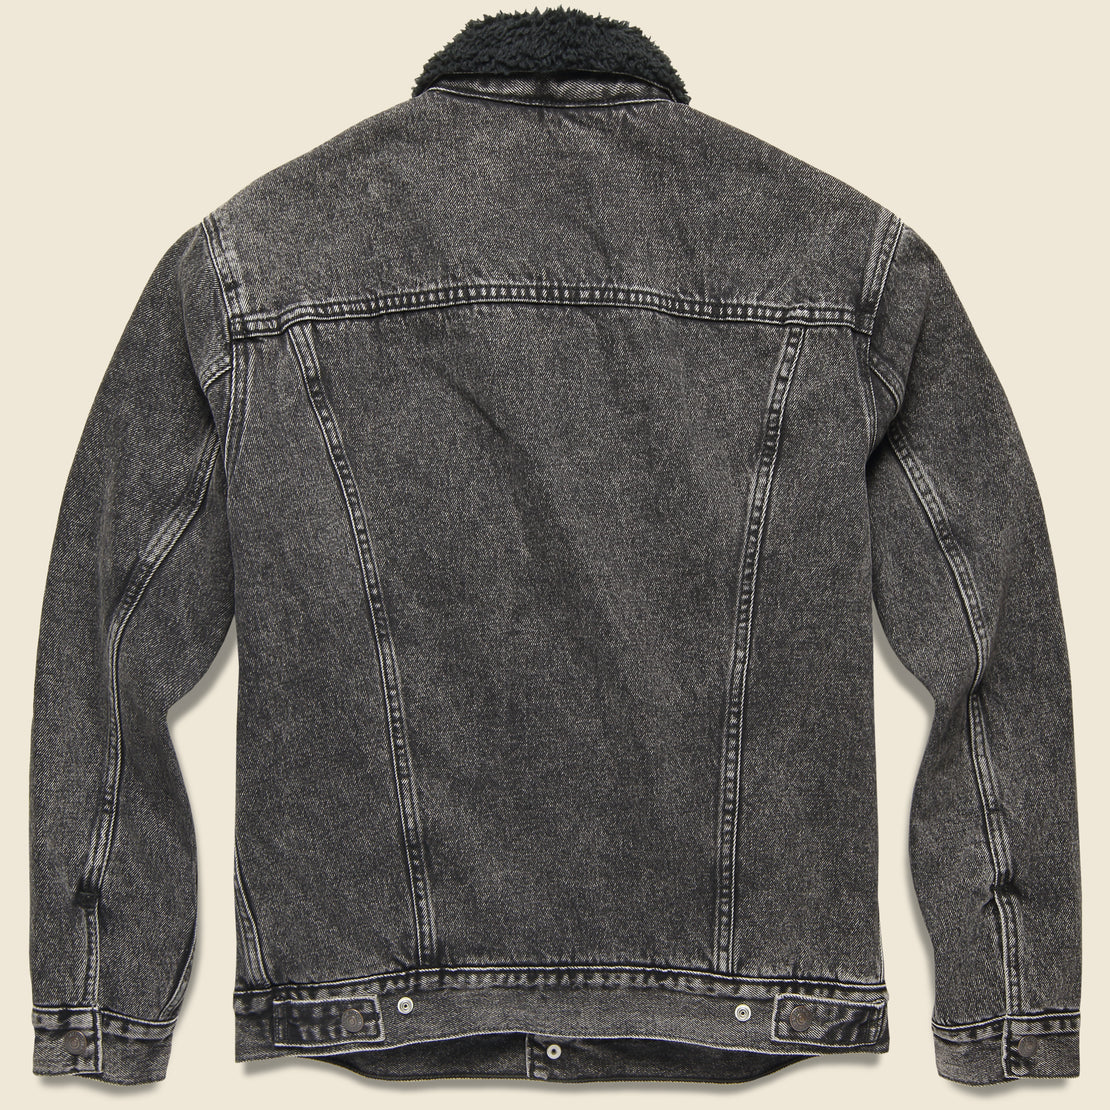 Type III Sherpa Trucker Jacket - Roadster